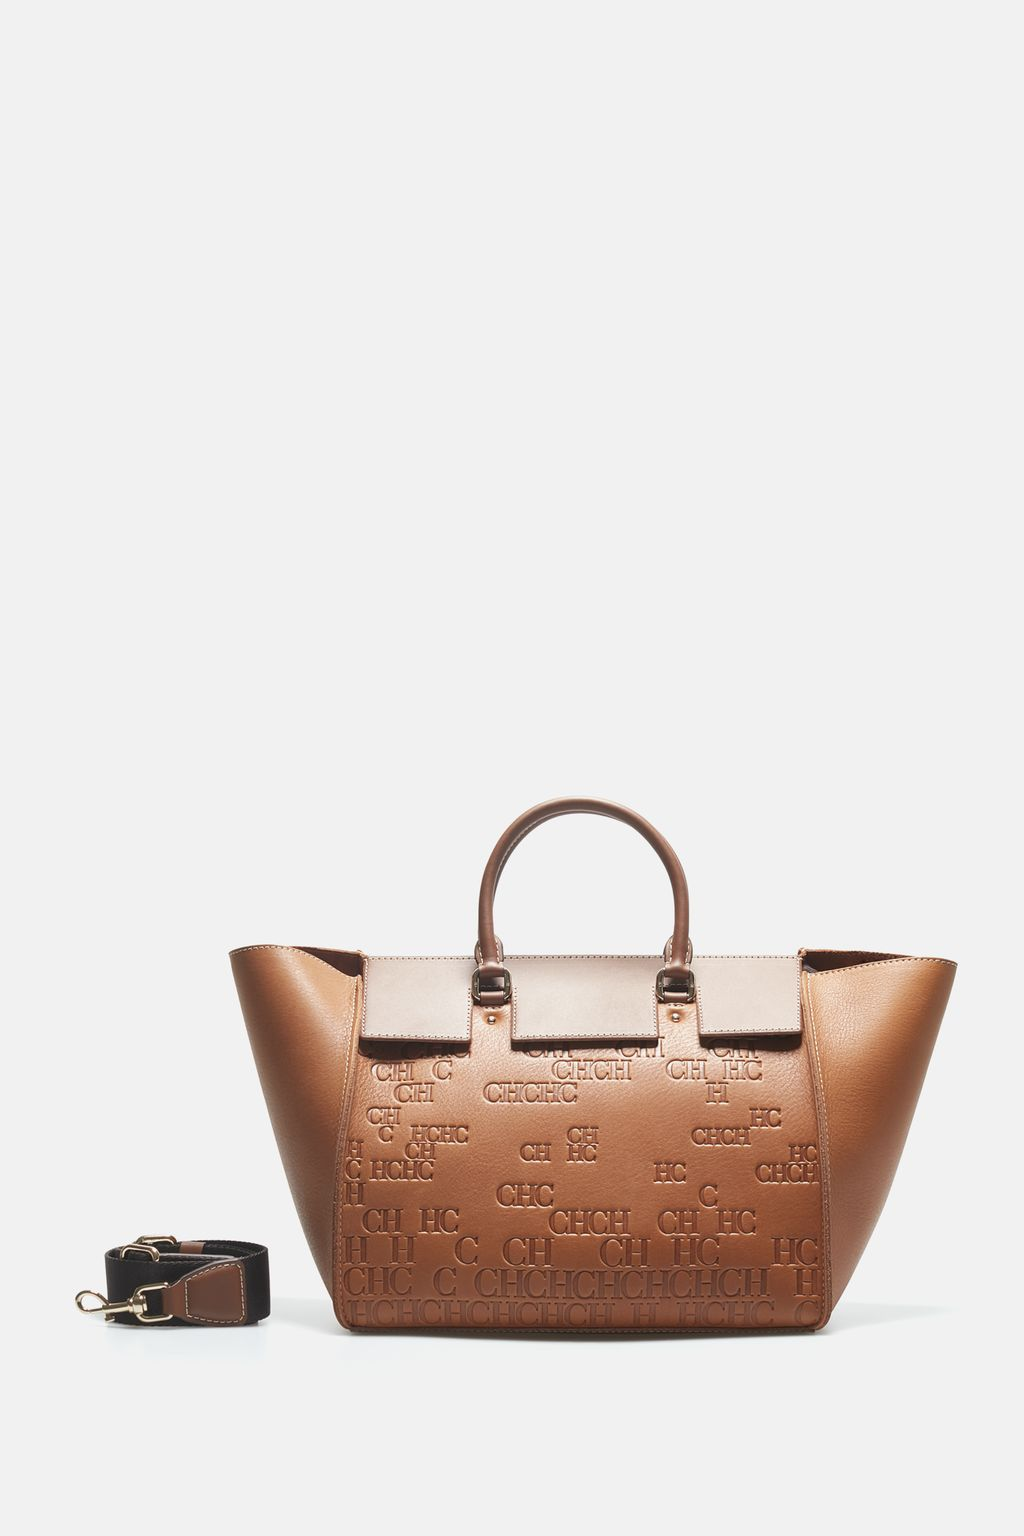 Midi Vendome Obelisque | Medium handbag